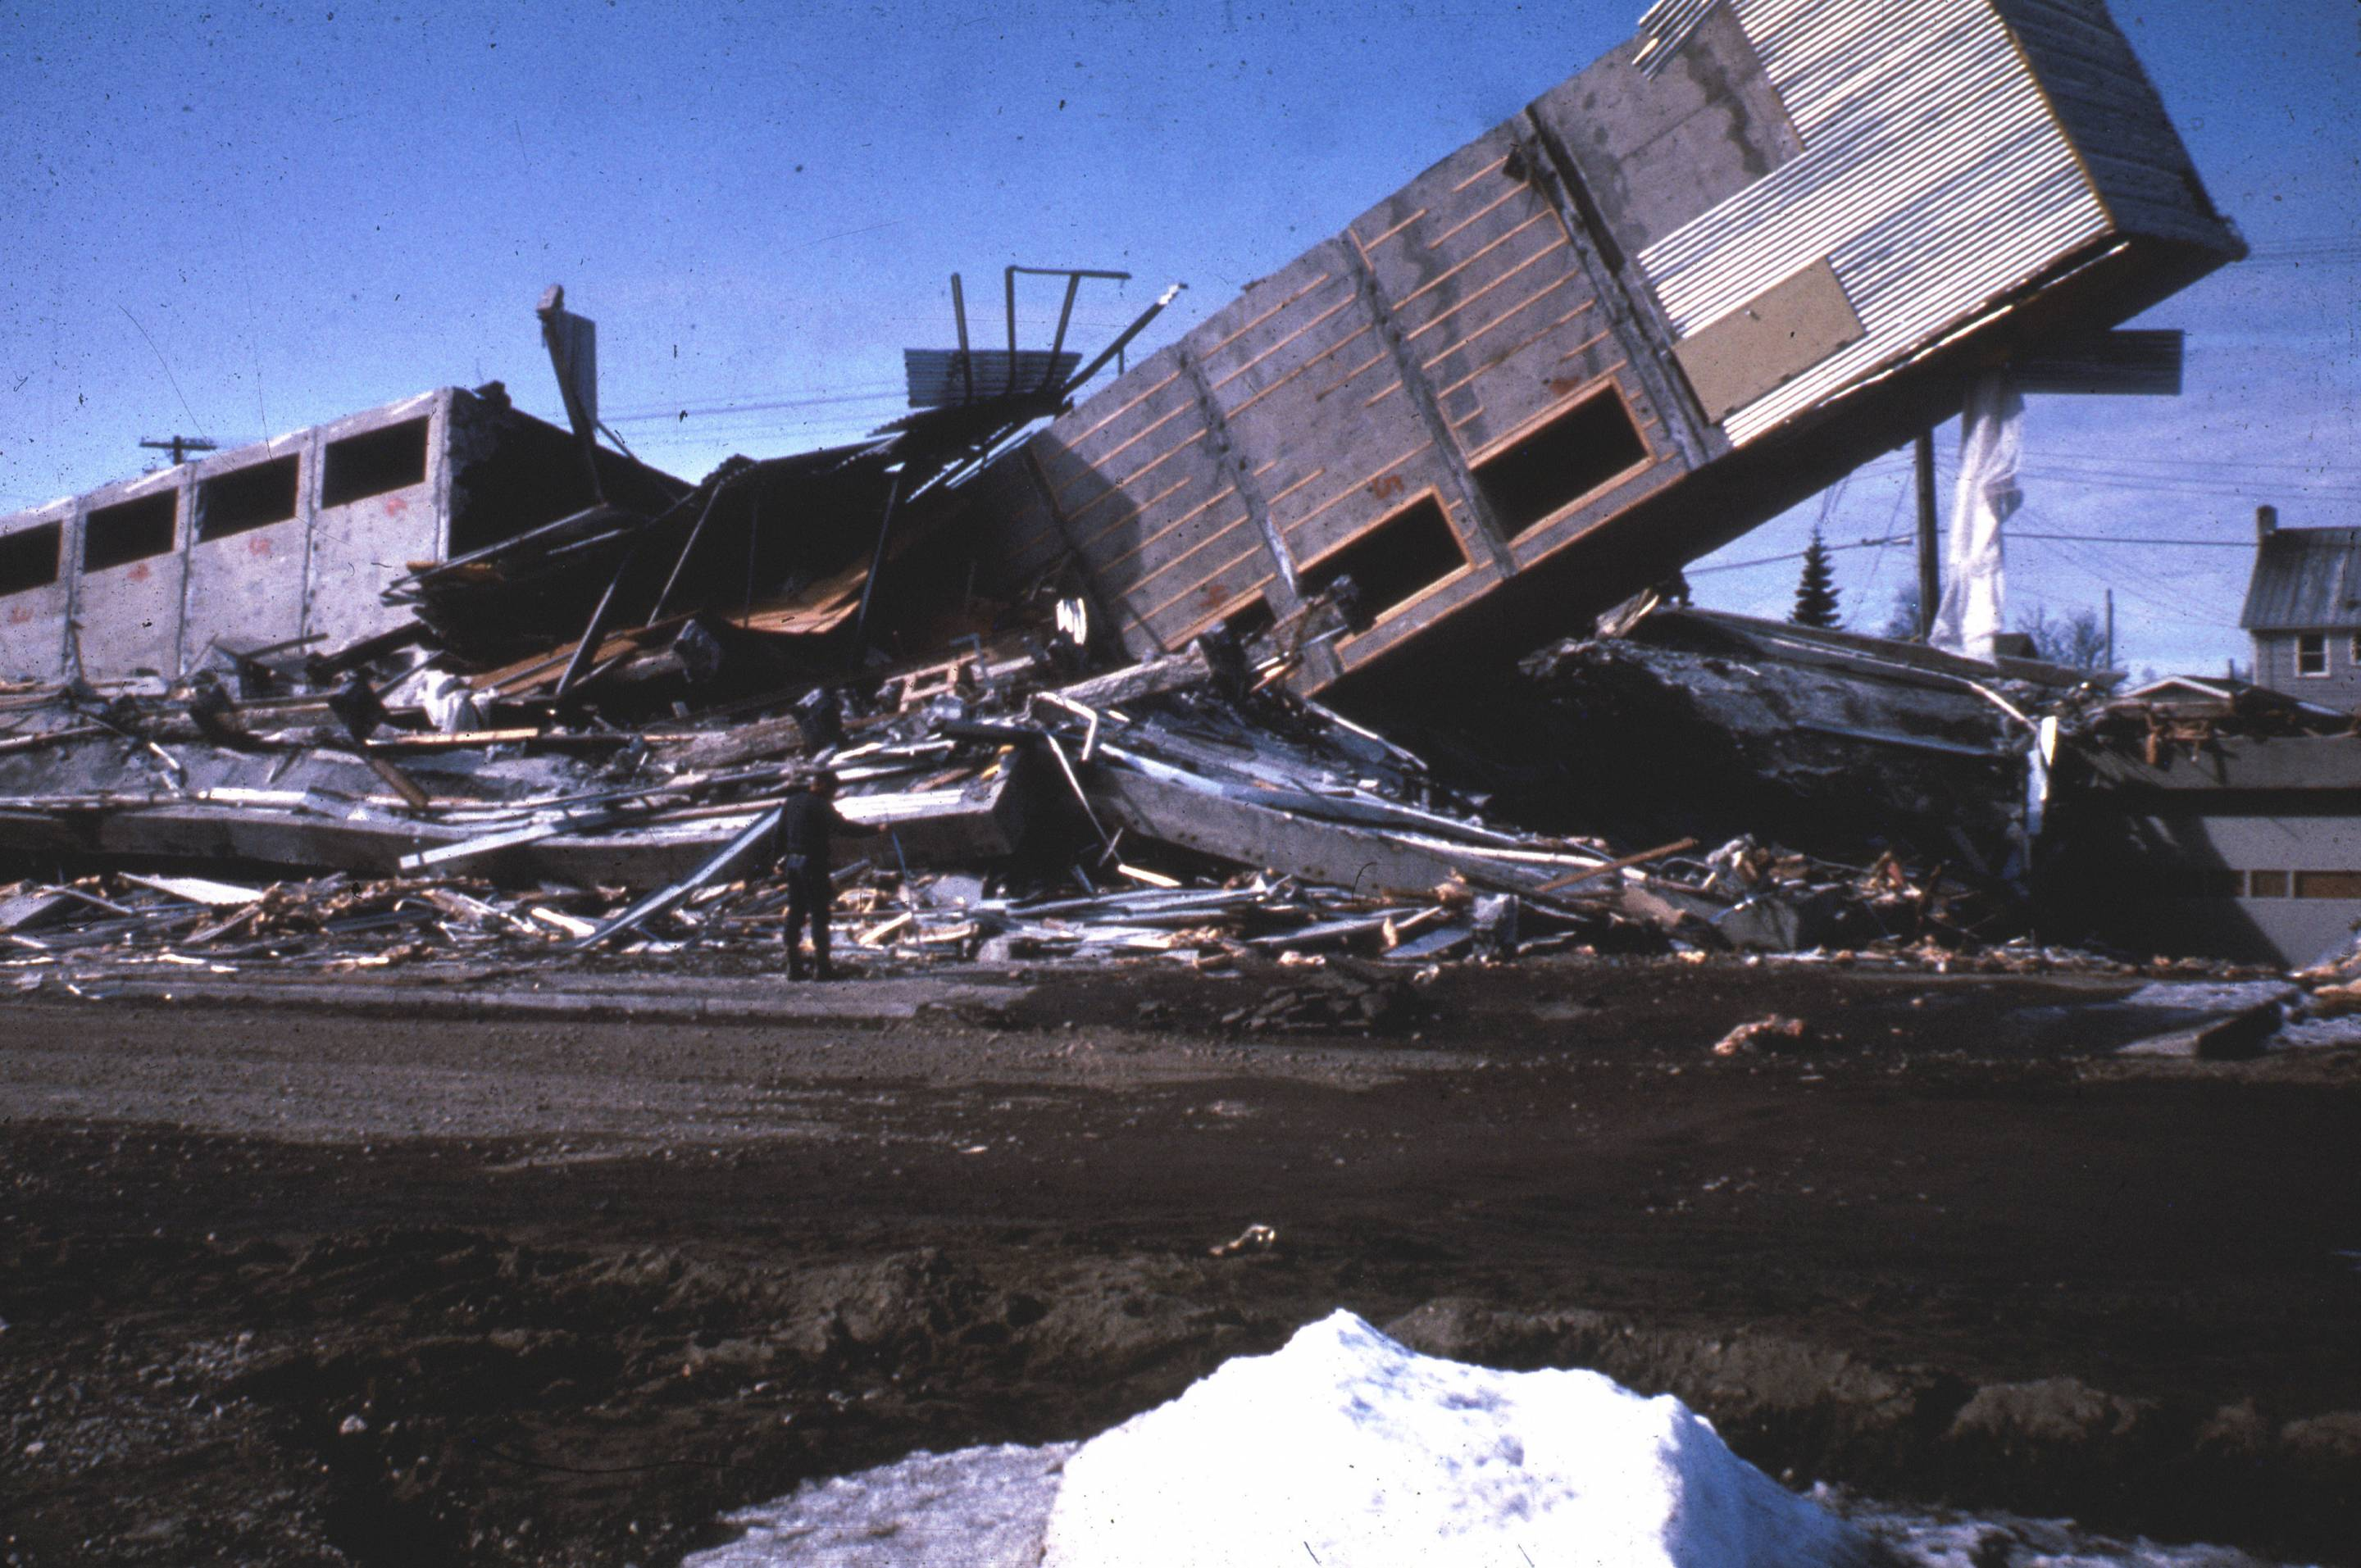 Alaska Earthquake March 27, 1964, The Four Seasons Apartments In Anchorage Was A Six-Story Lift-Slab Reinforced Concrete Building Which Cracked To The Ground During The Earthquake, The Building Was Under Construction, But Structurally Completed, At T